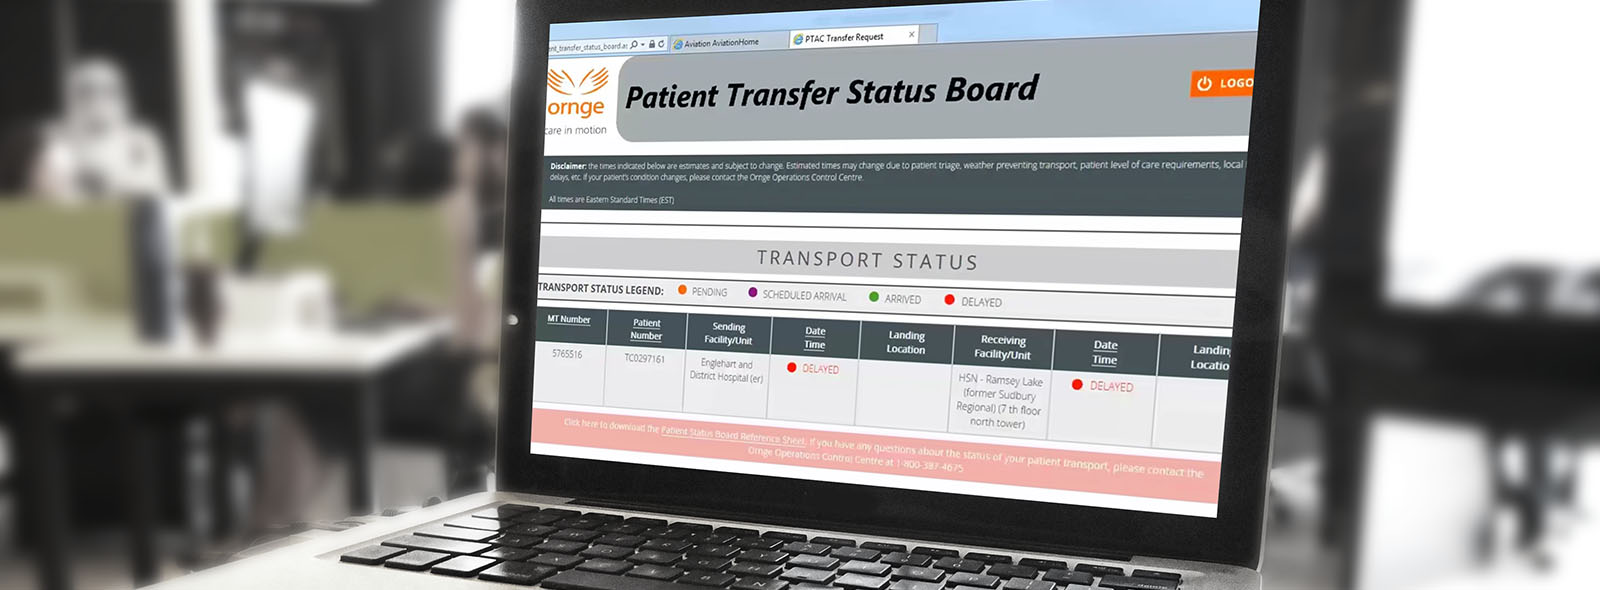 Sample Patient Transfer Status Board